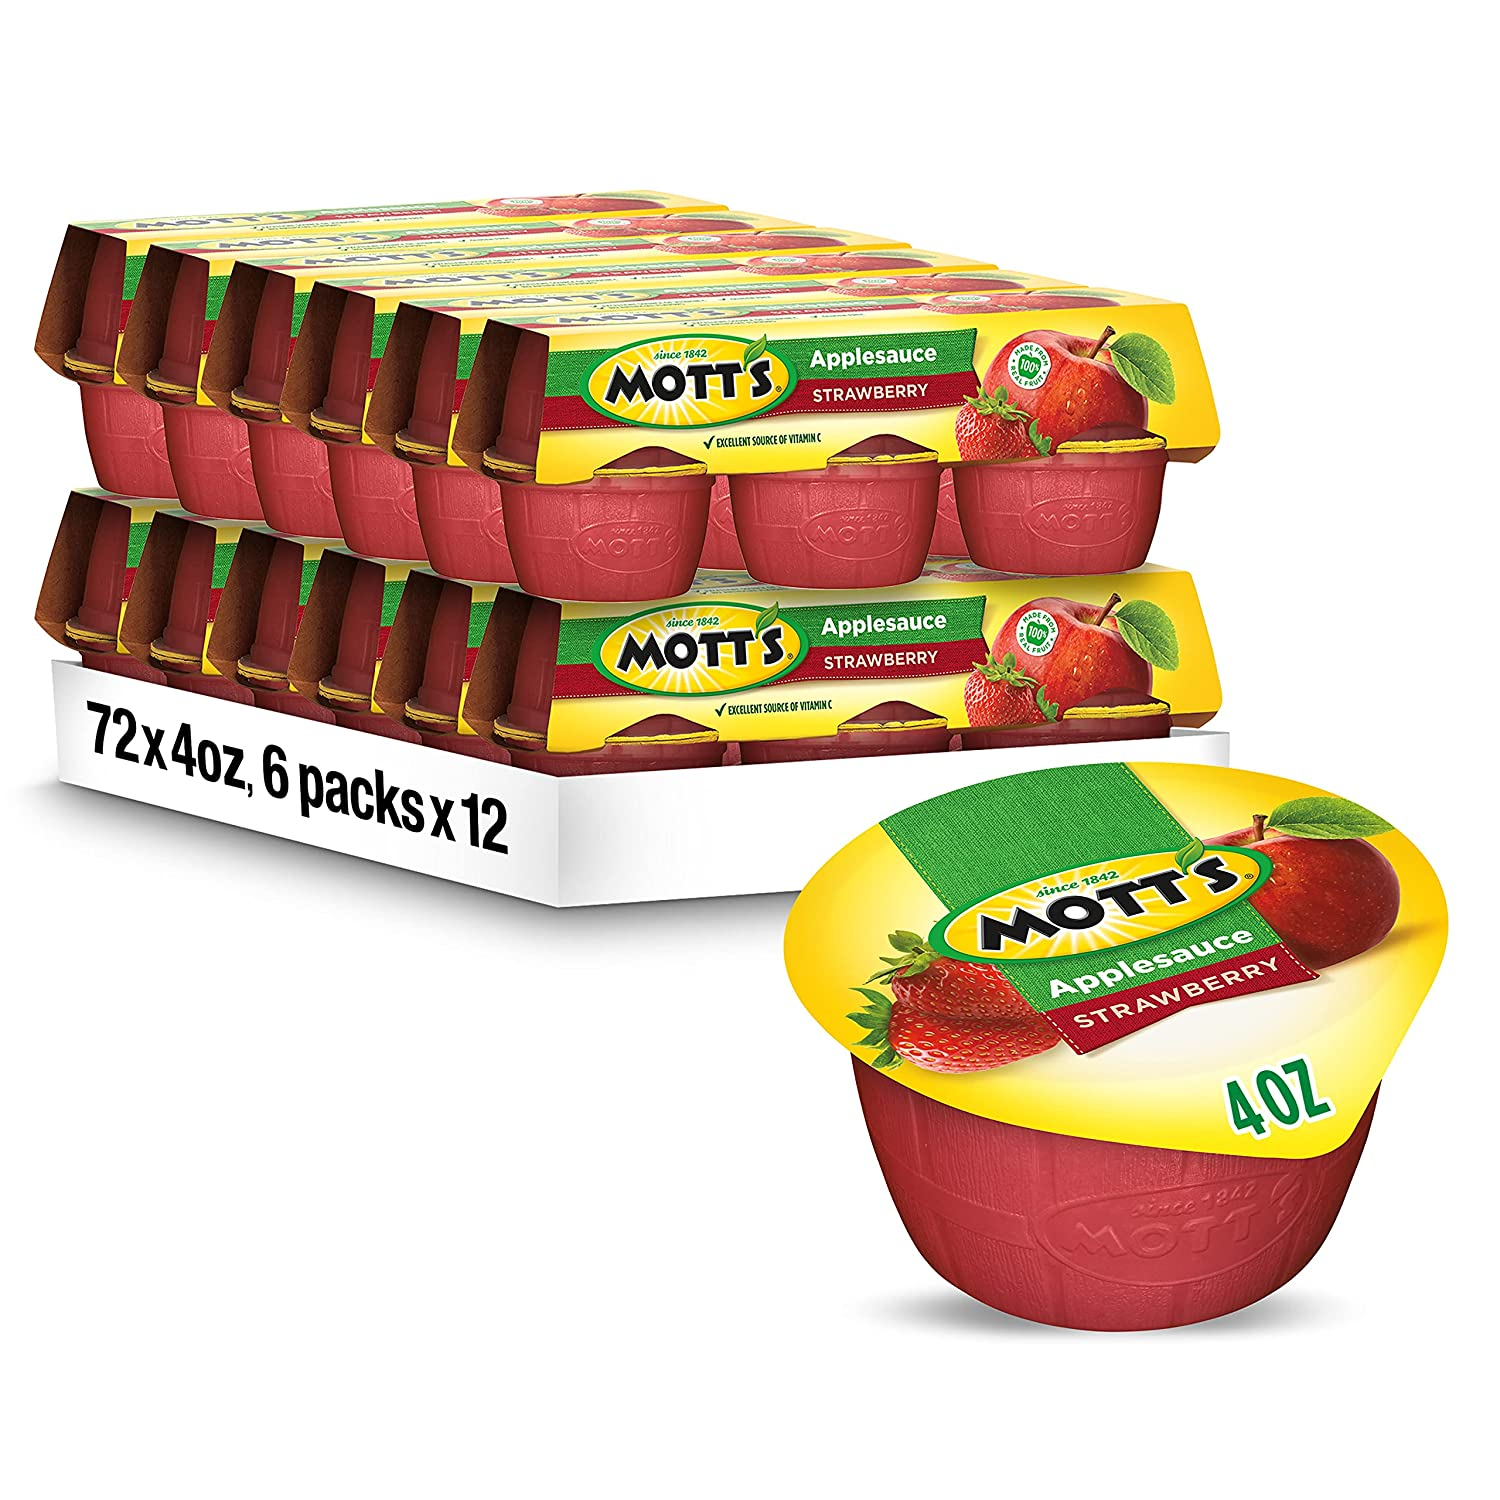 Mott's Strawberry Applesauce, 4 Ounce Cup, 6 Count (Pack of 12)